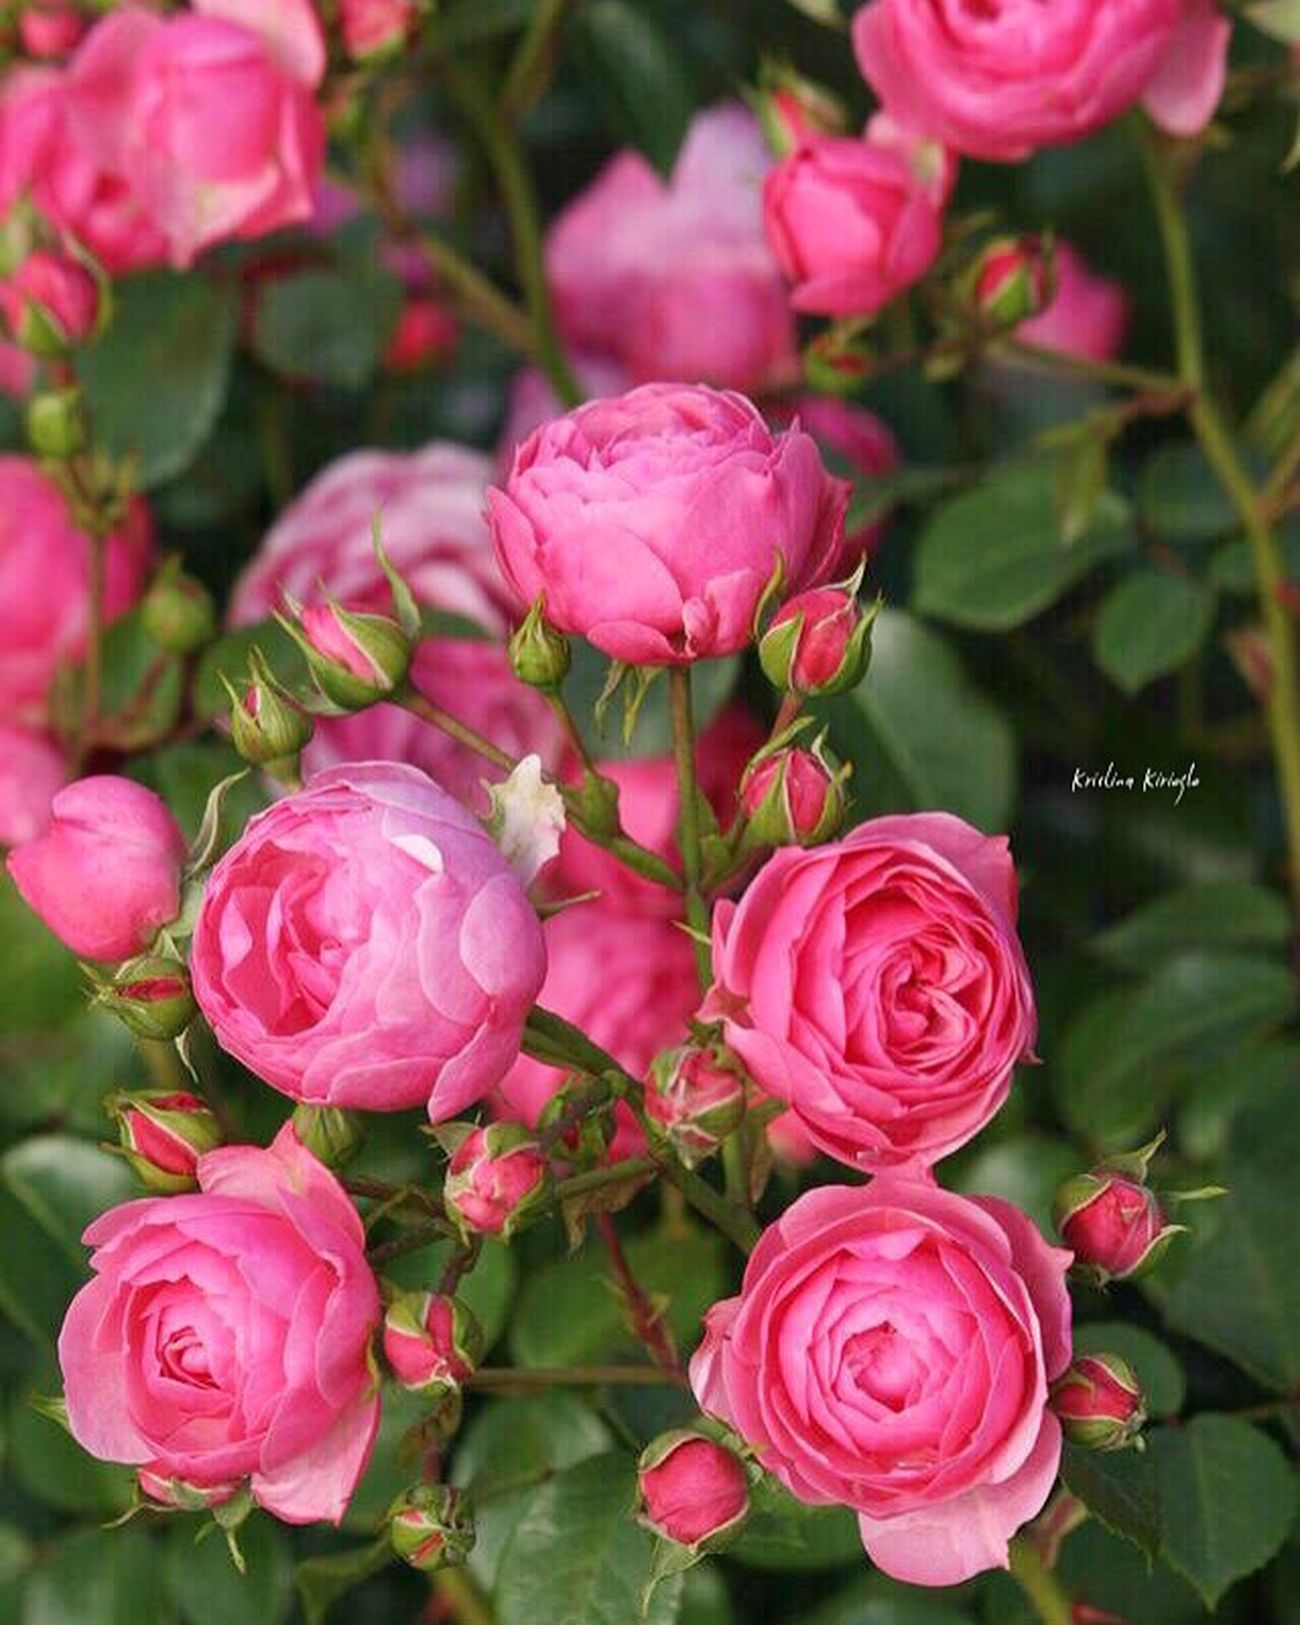 Помпонелла💐😻👏🙈 Flower Rose - Flower Pink Color Beauty In Nature Shabby Chic Provence Rococo